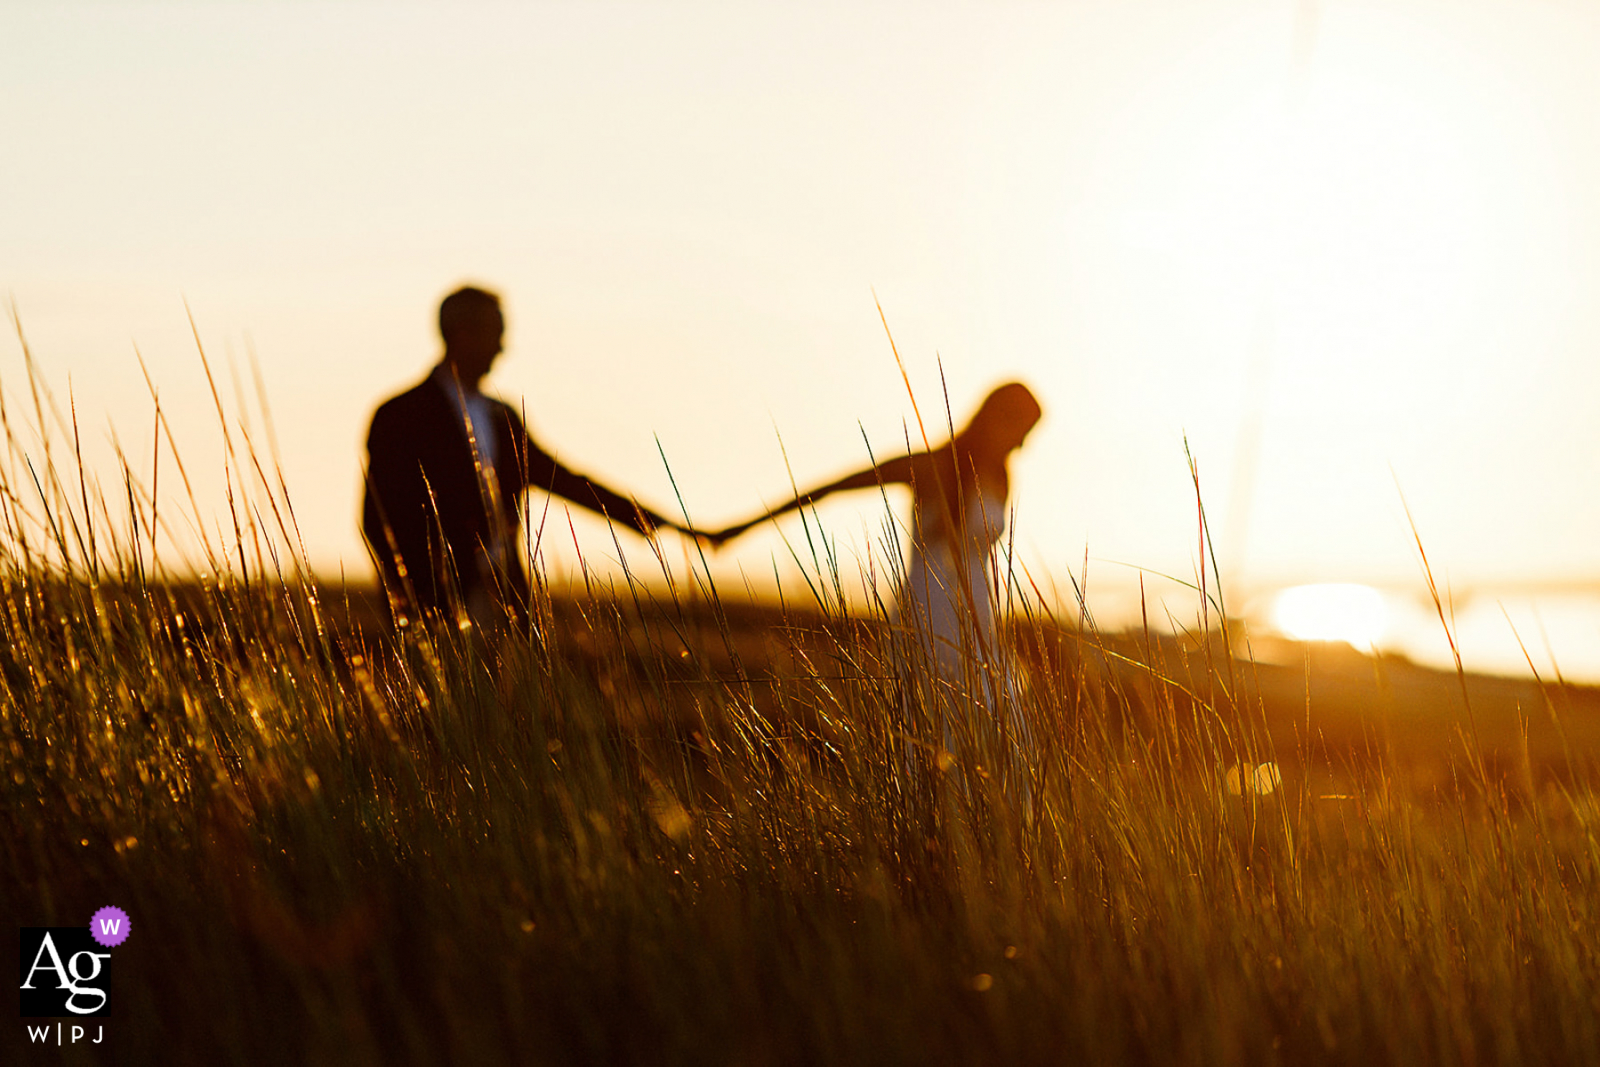 Barnstable, MA creative soft focus fields wedding image at sunset